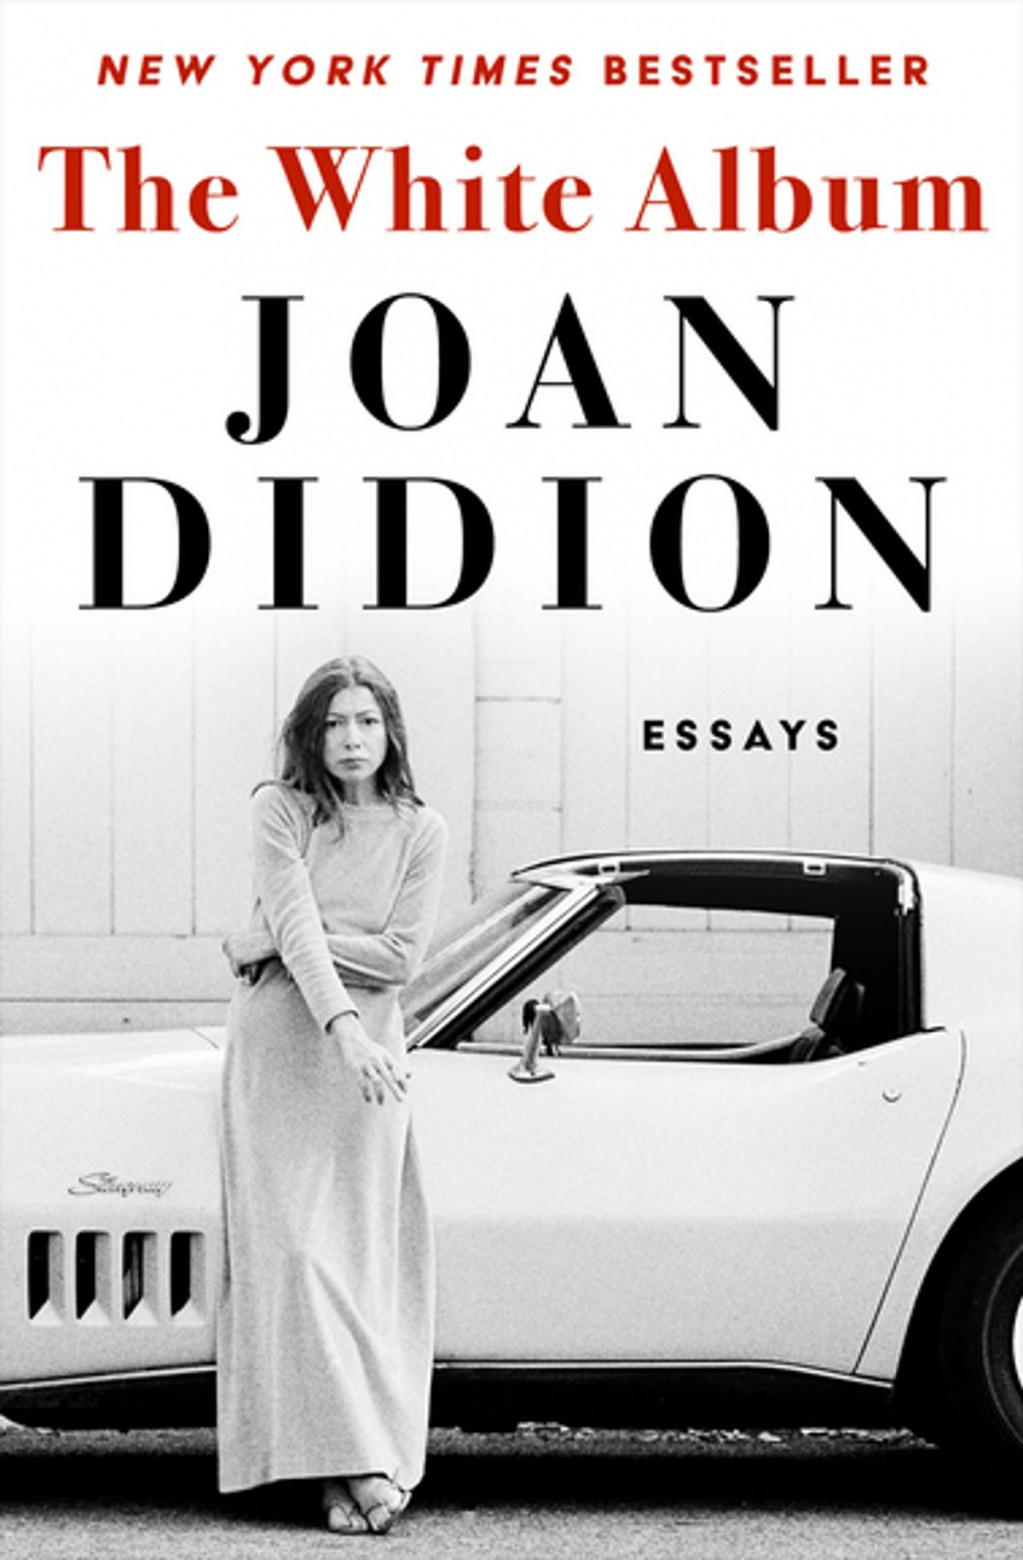 026 The White Album Essay Example Joan Didion Singular Essays Collections On Santa Ana Winds Amazon Large